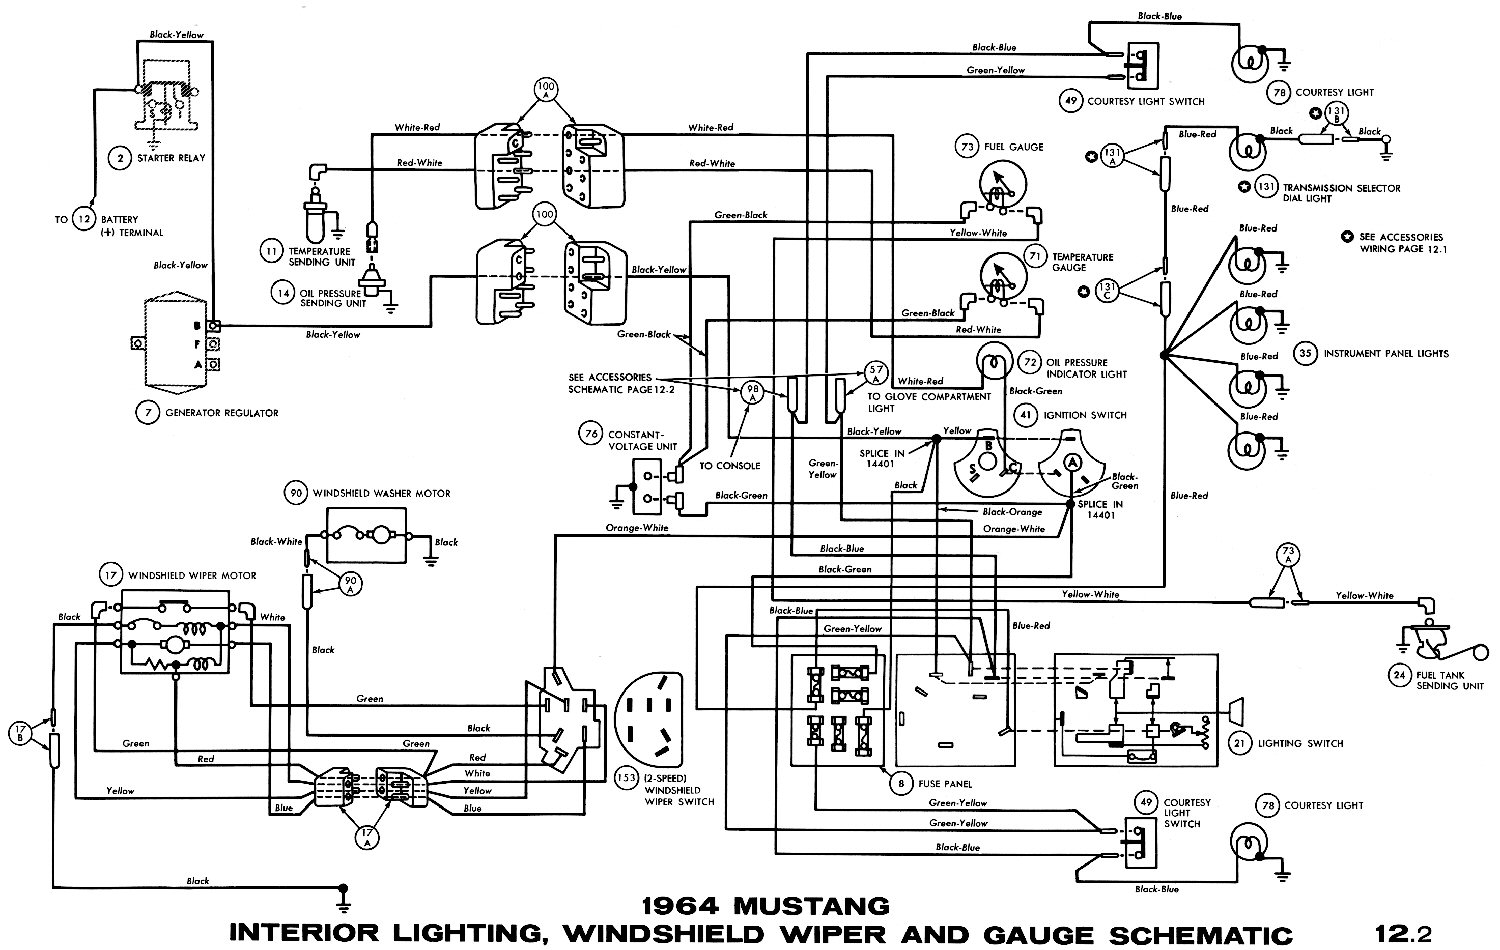 1964k mustang wiring diagrams mustang engine diagram \u2022 free wiring engine wiring diagram 1967 mustang v8 at mifinder.co